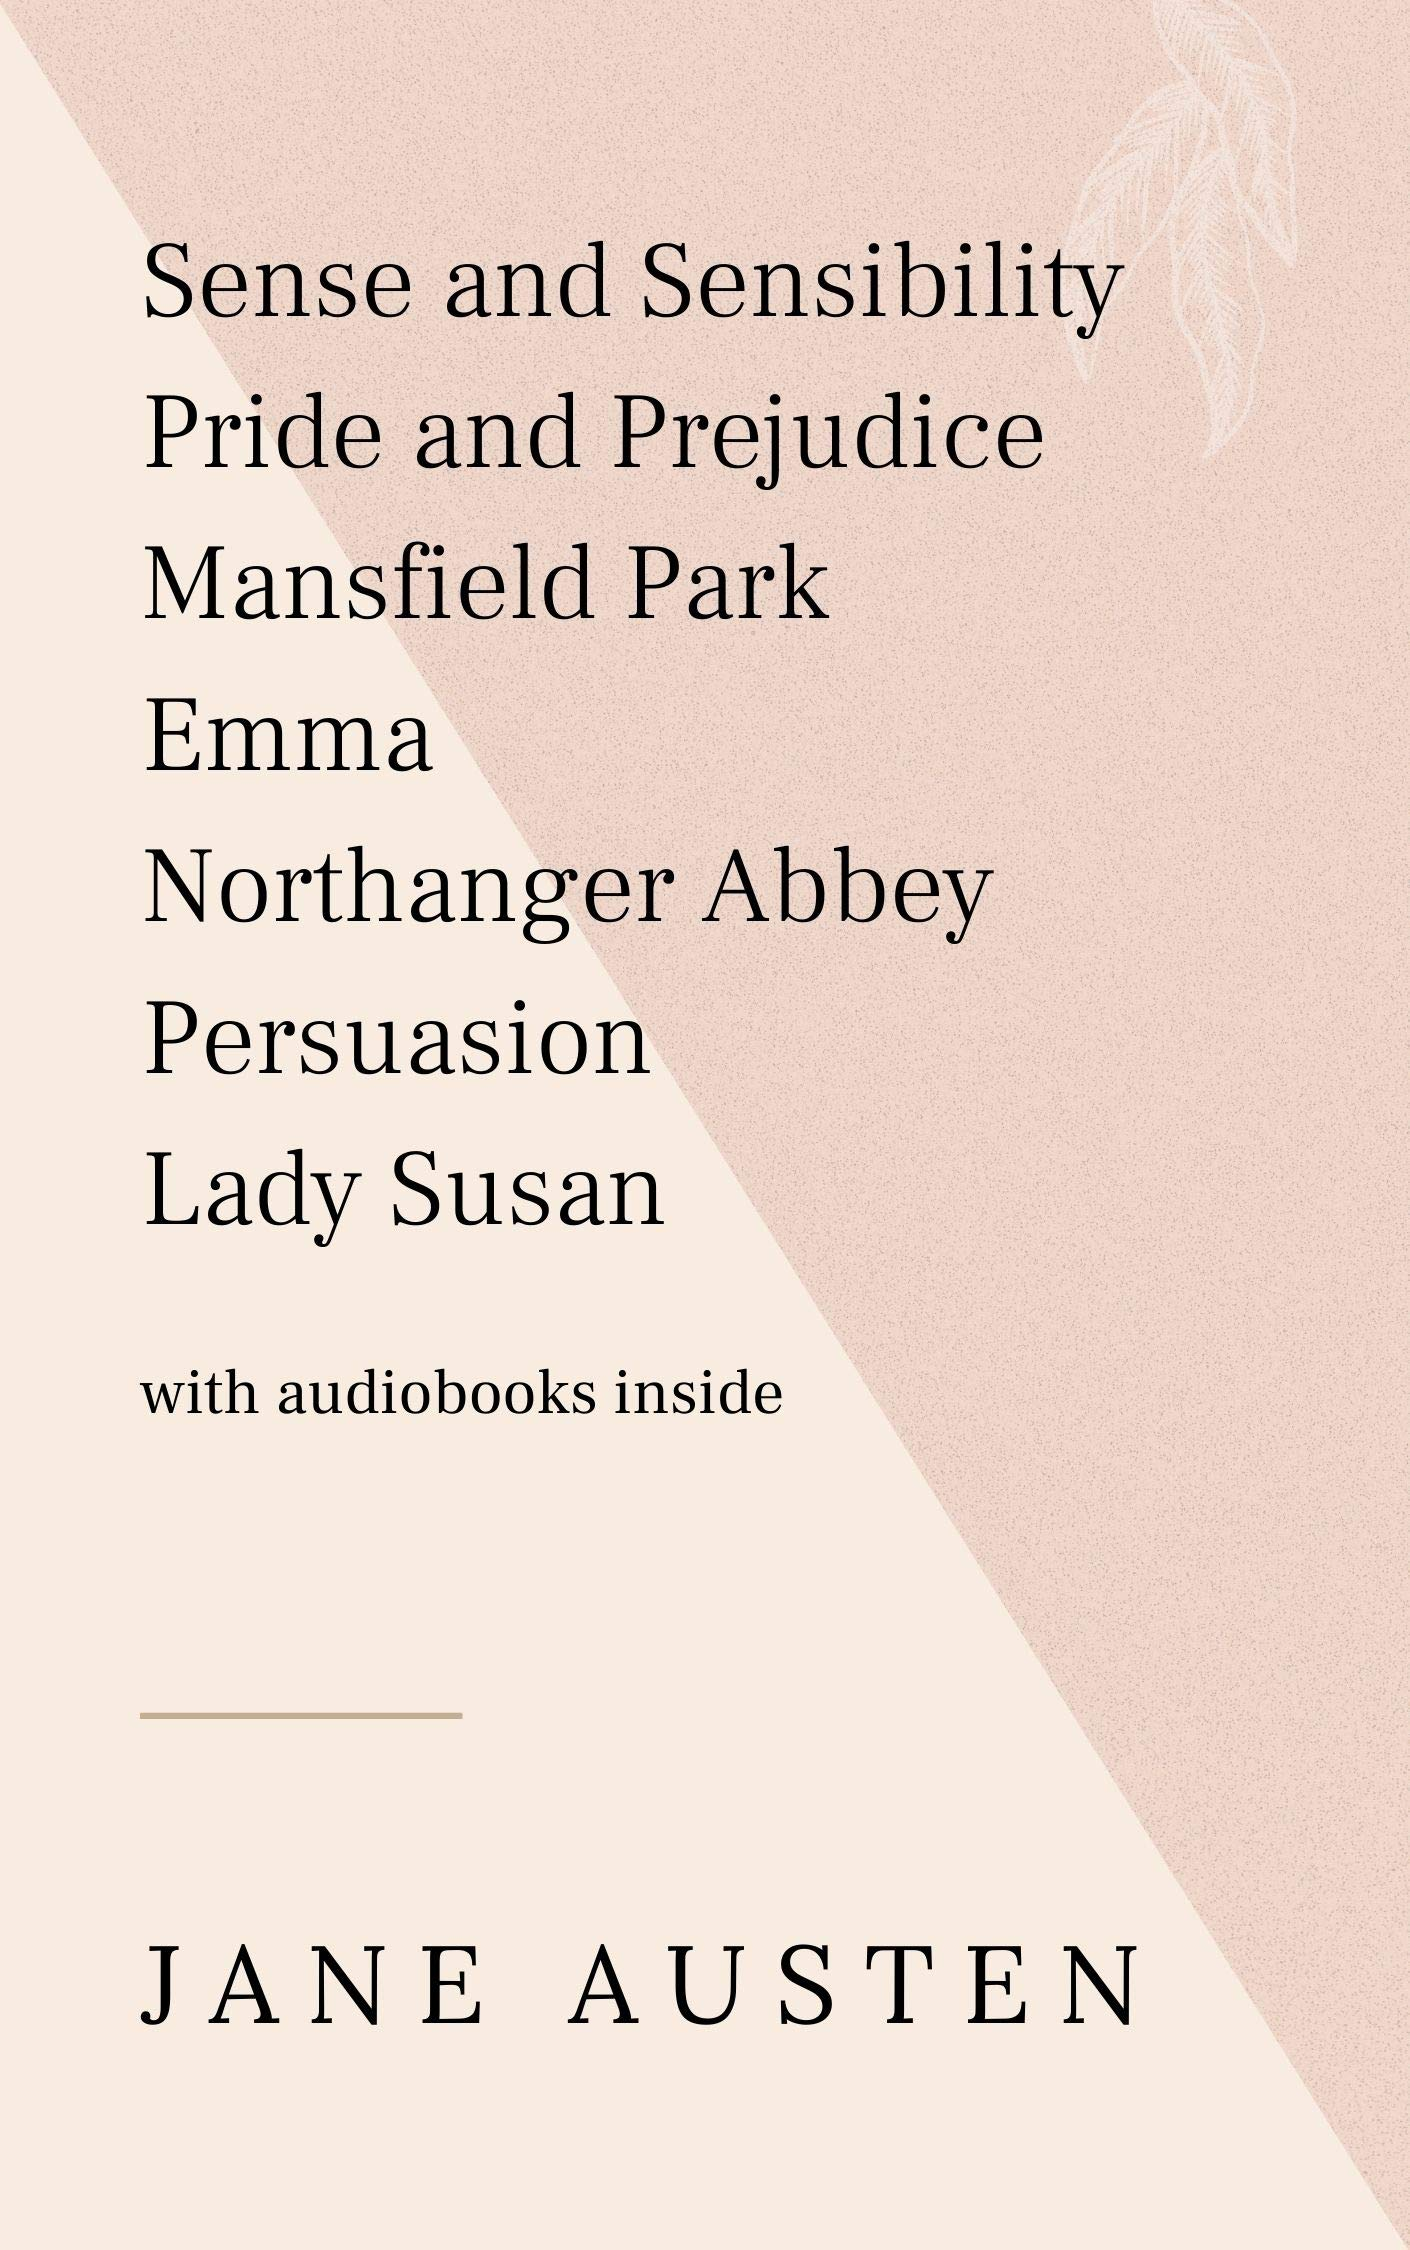 Jane Austen: Sense and Sensibility, Pride and Prejudice, Mansfield Park, Emma, Northanger Abbey, Persuasion, Lady Susan - WITH AUDIOBOOKS INSIDE